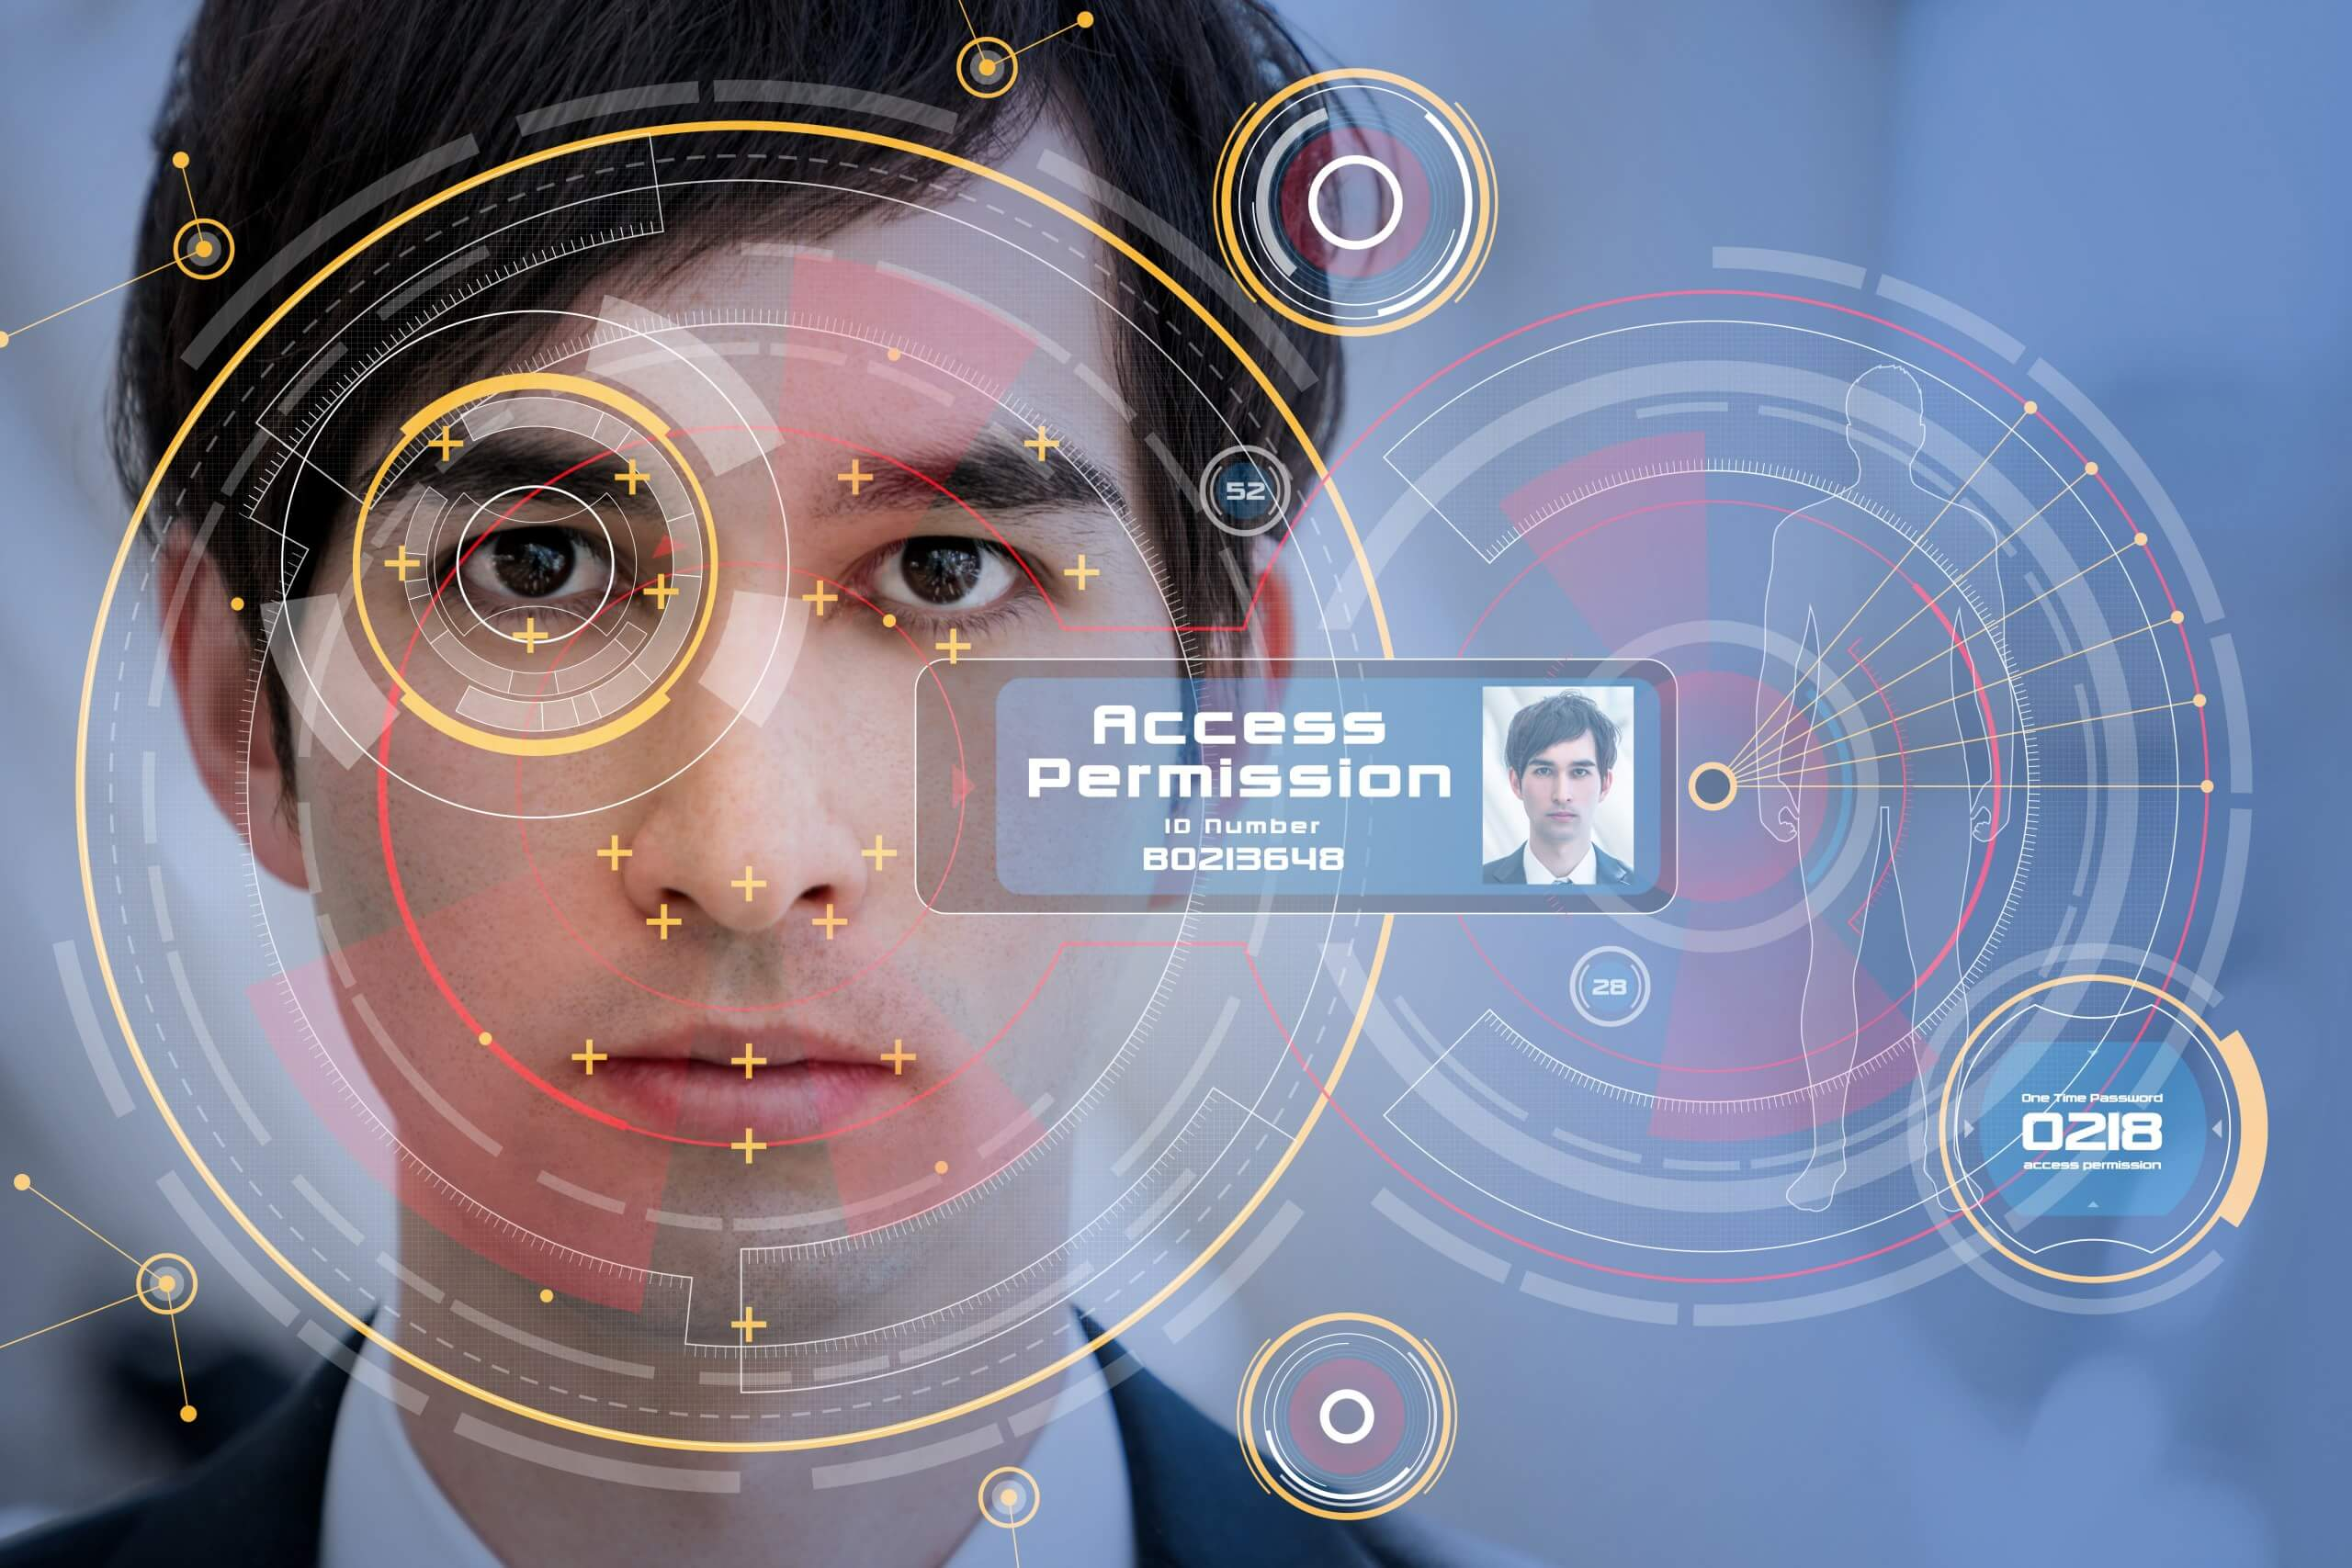 Even Amazon wants face recognition regulated